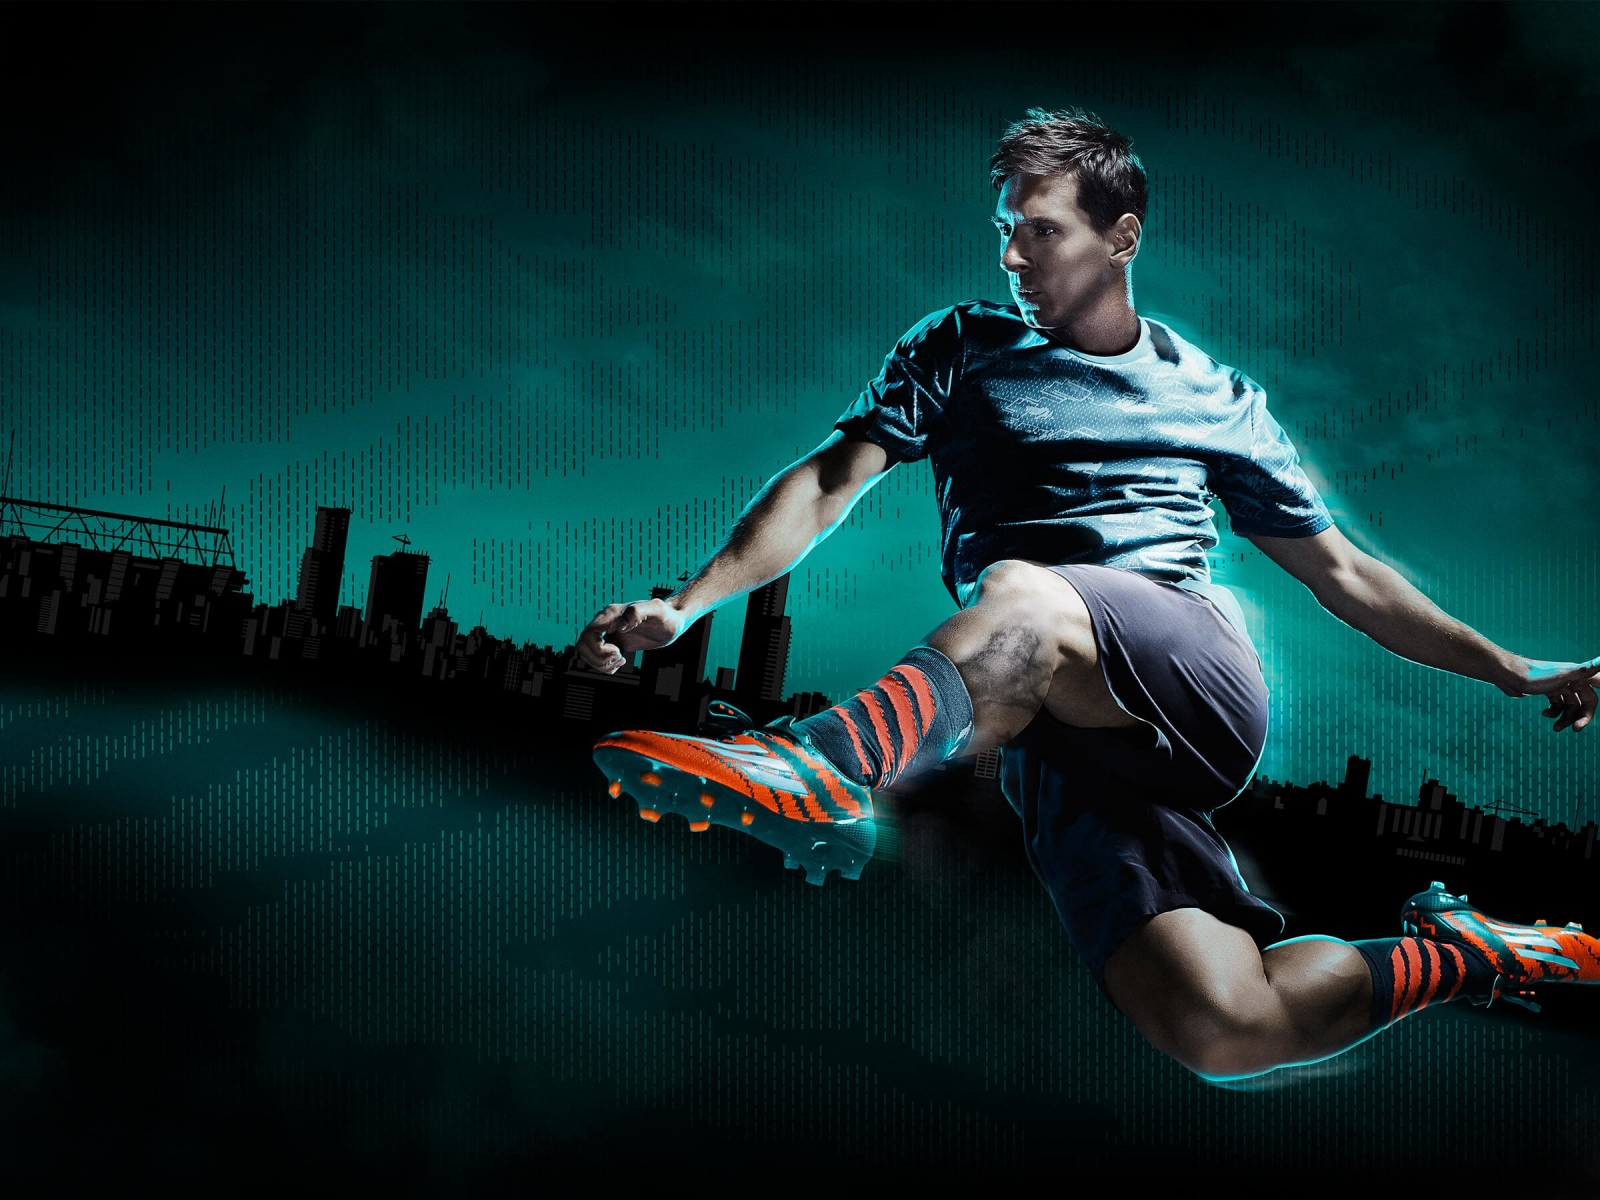 Lionel Messi Adidas Commercial Wallpaper for Desktop 1600x1200